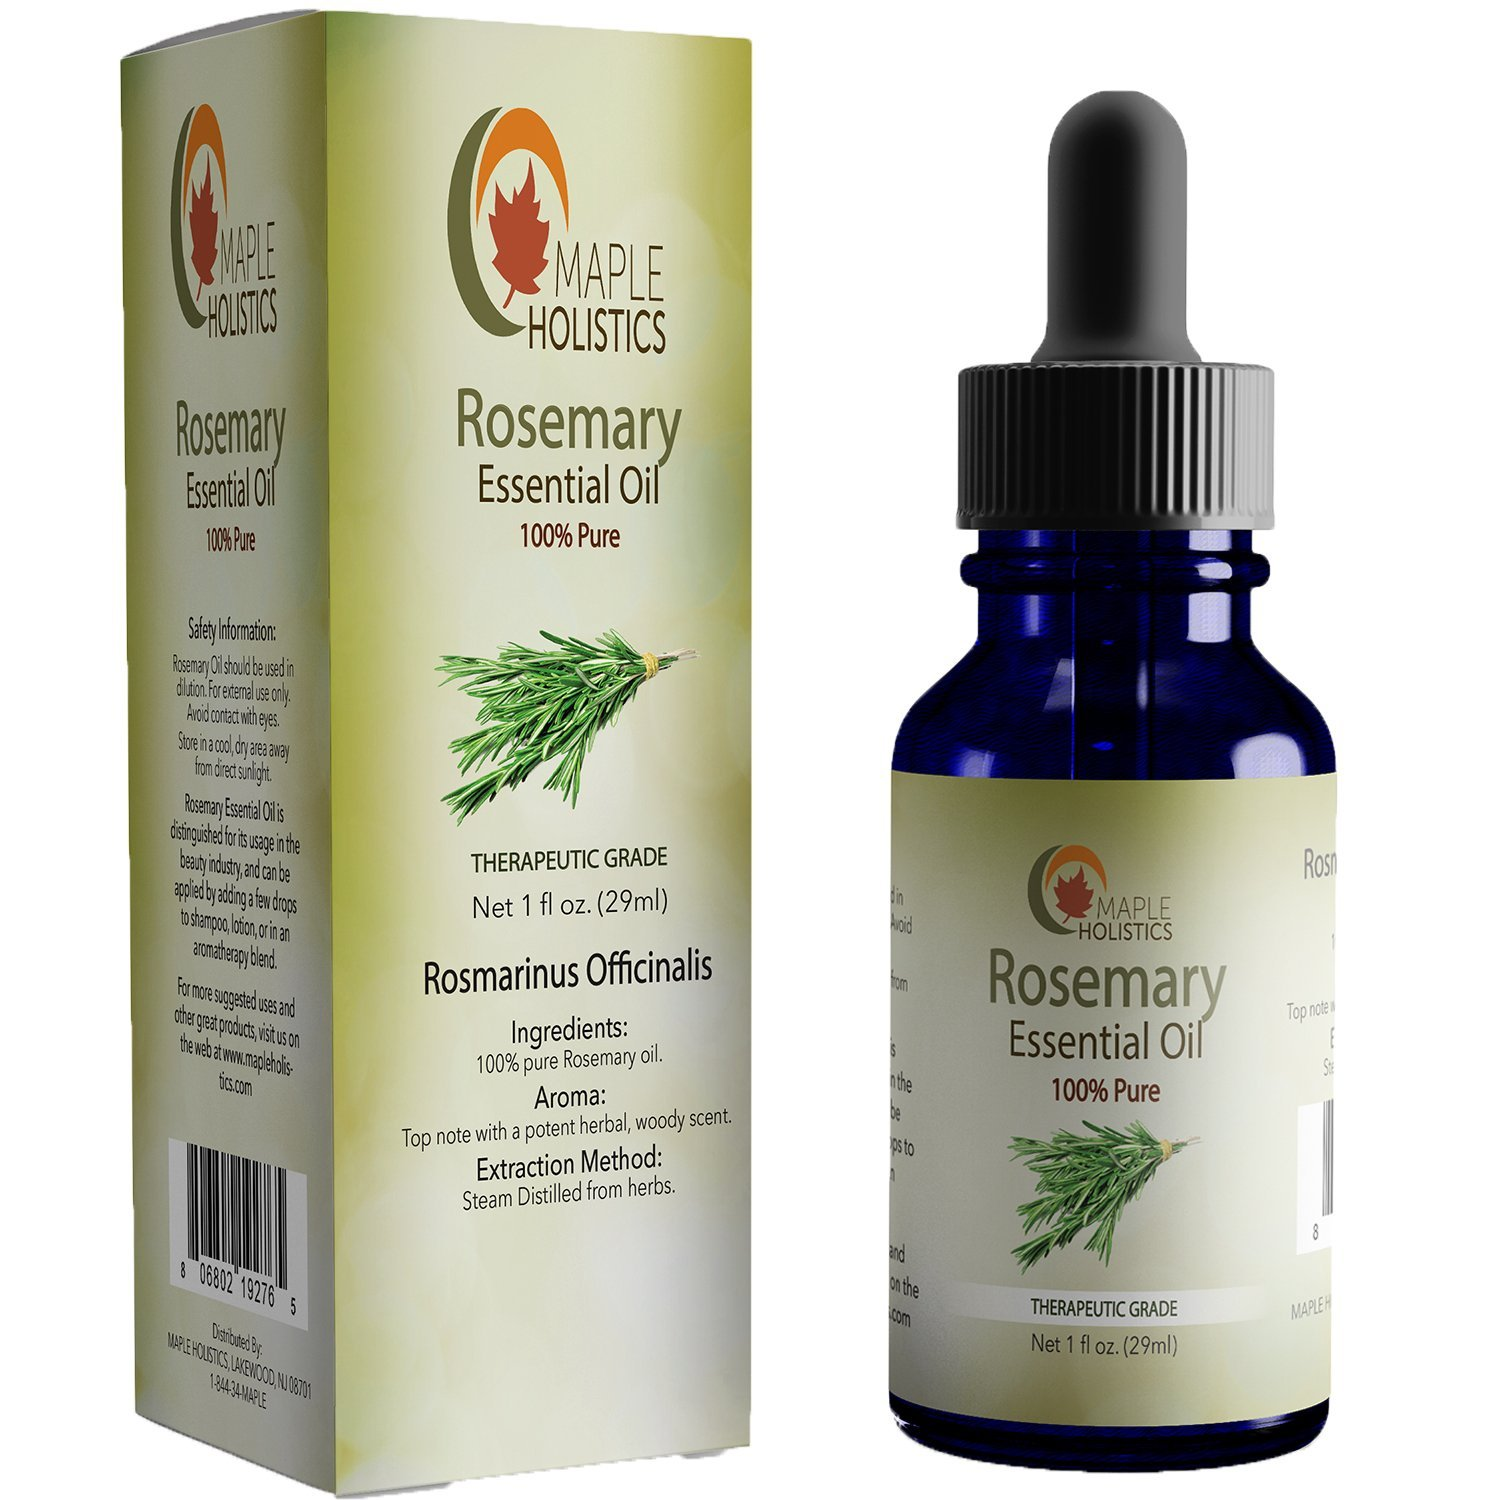 Maple Holistics 100% Pure Rosemary Oil, Skin & Hair Benefits, Natural Skin & Hair Care Product, 1 Oz